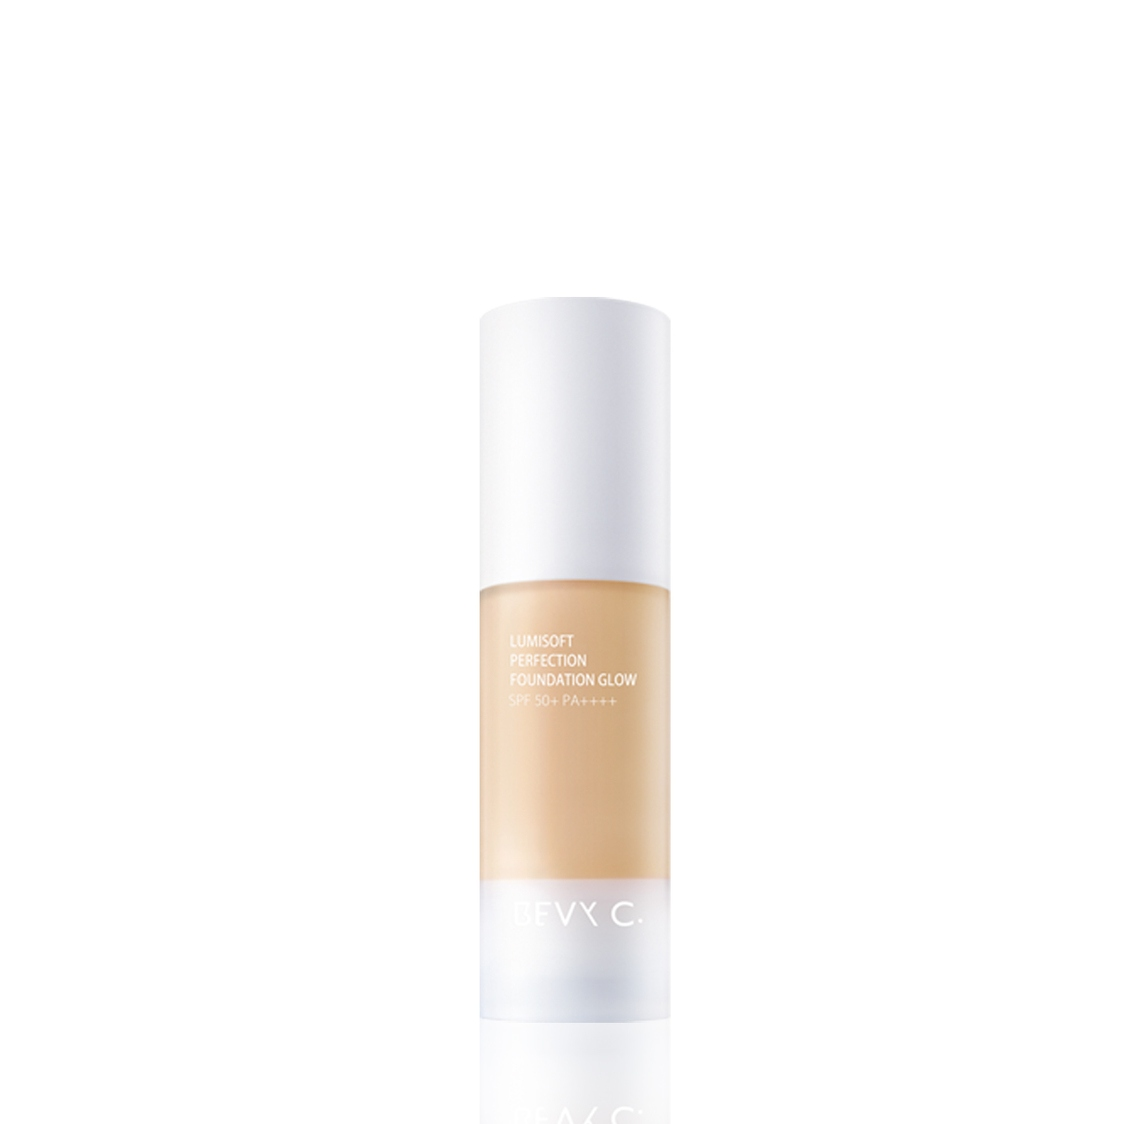 Lumisoft Perfection Foundation Glow G01